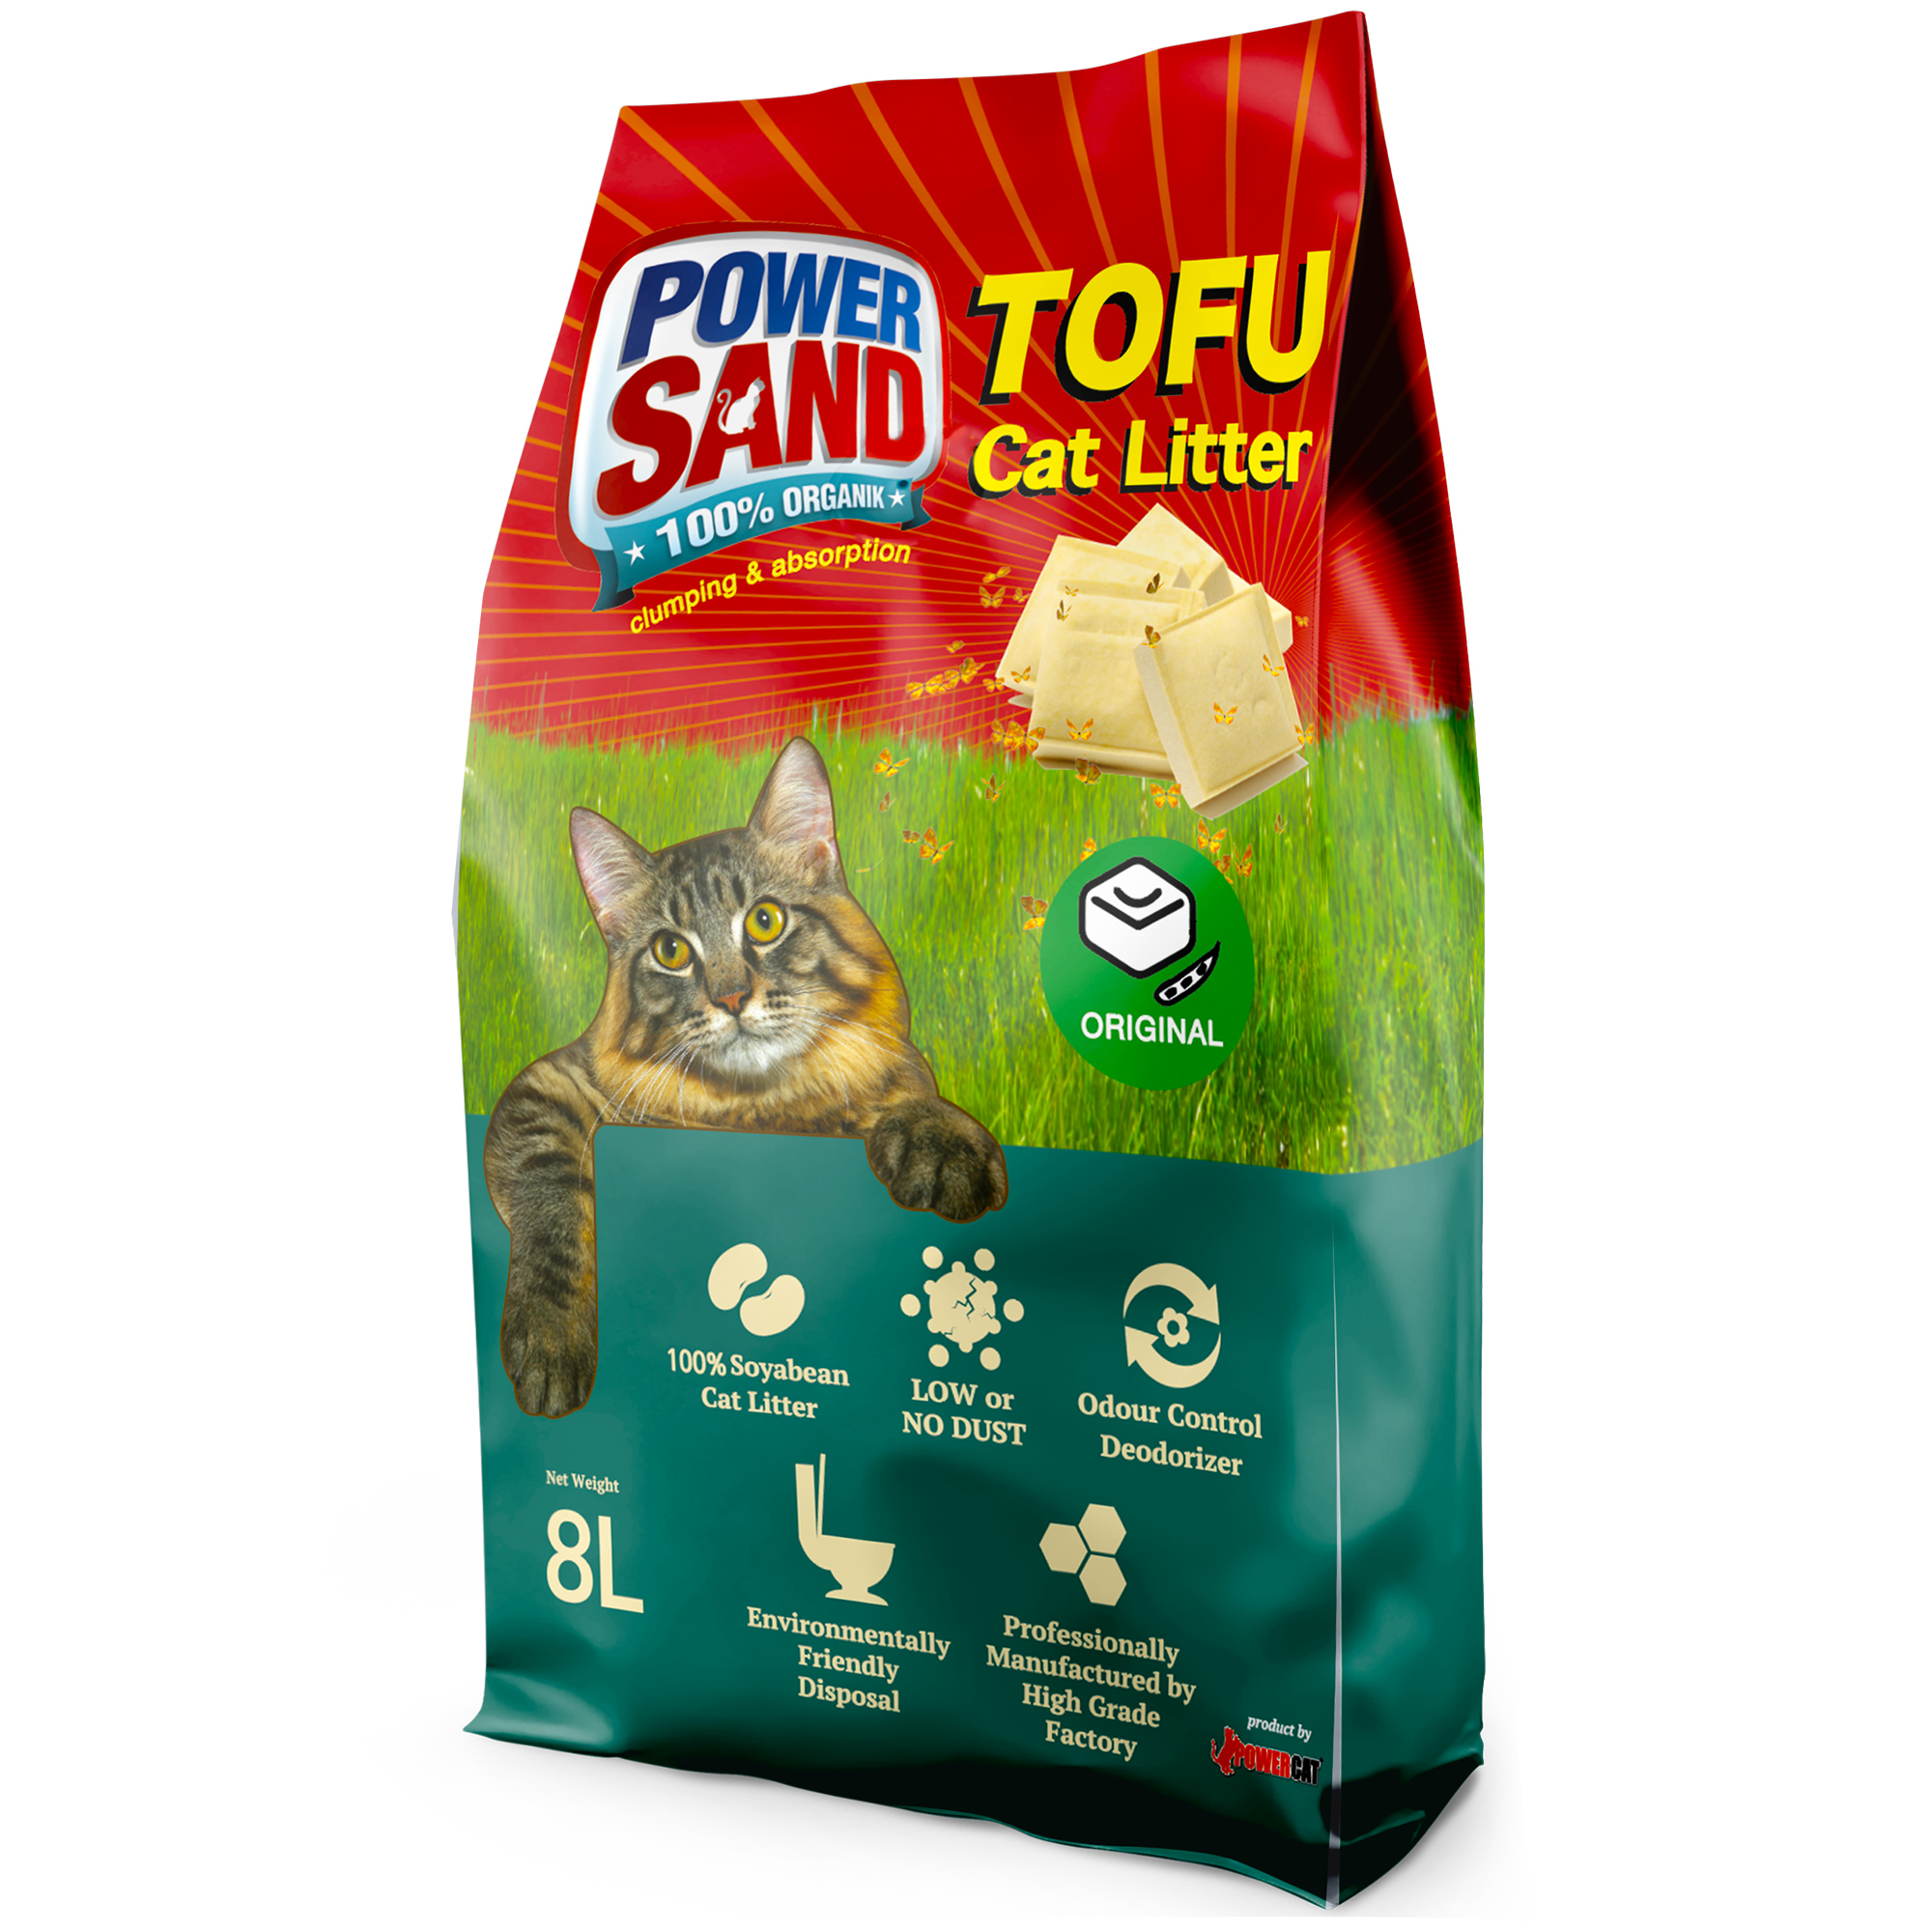 Tofu Cat Litter Original 8L (1).jpg